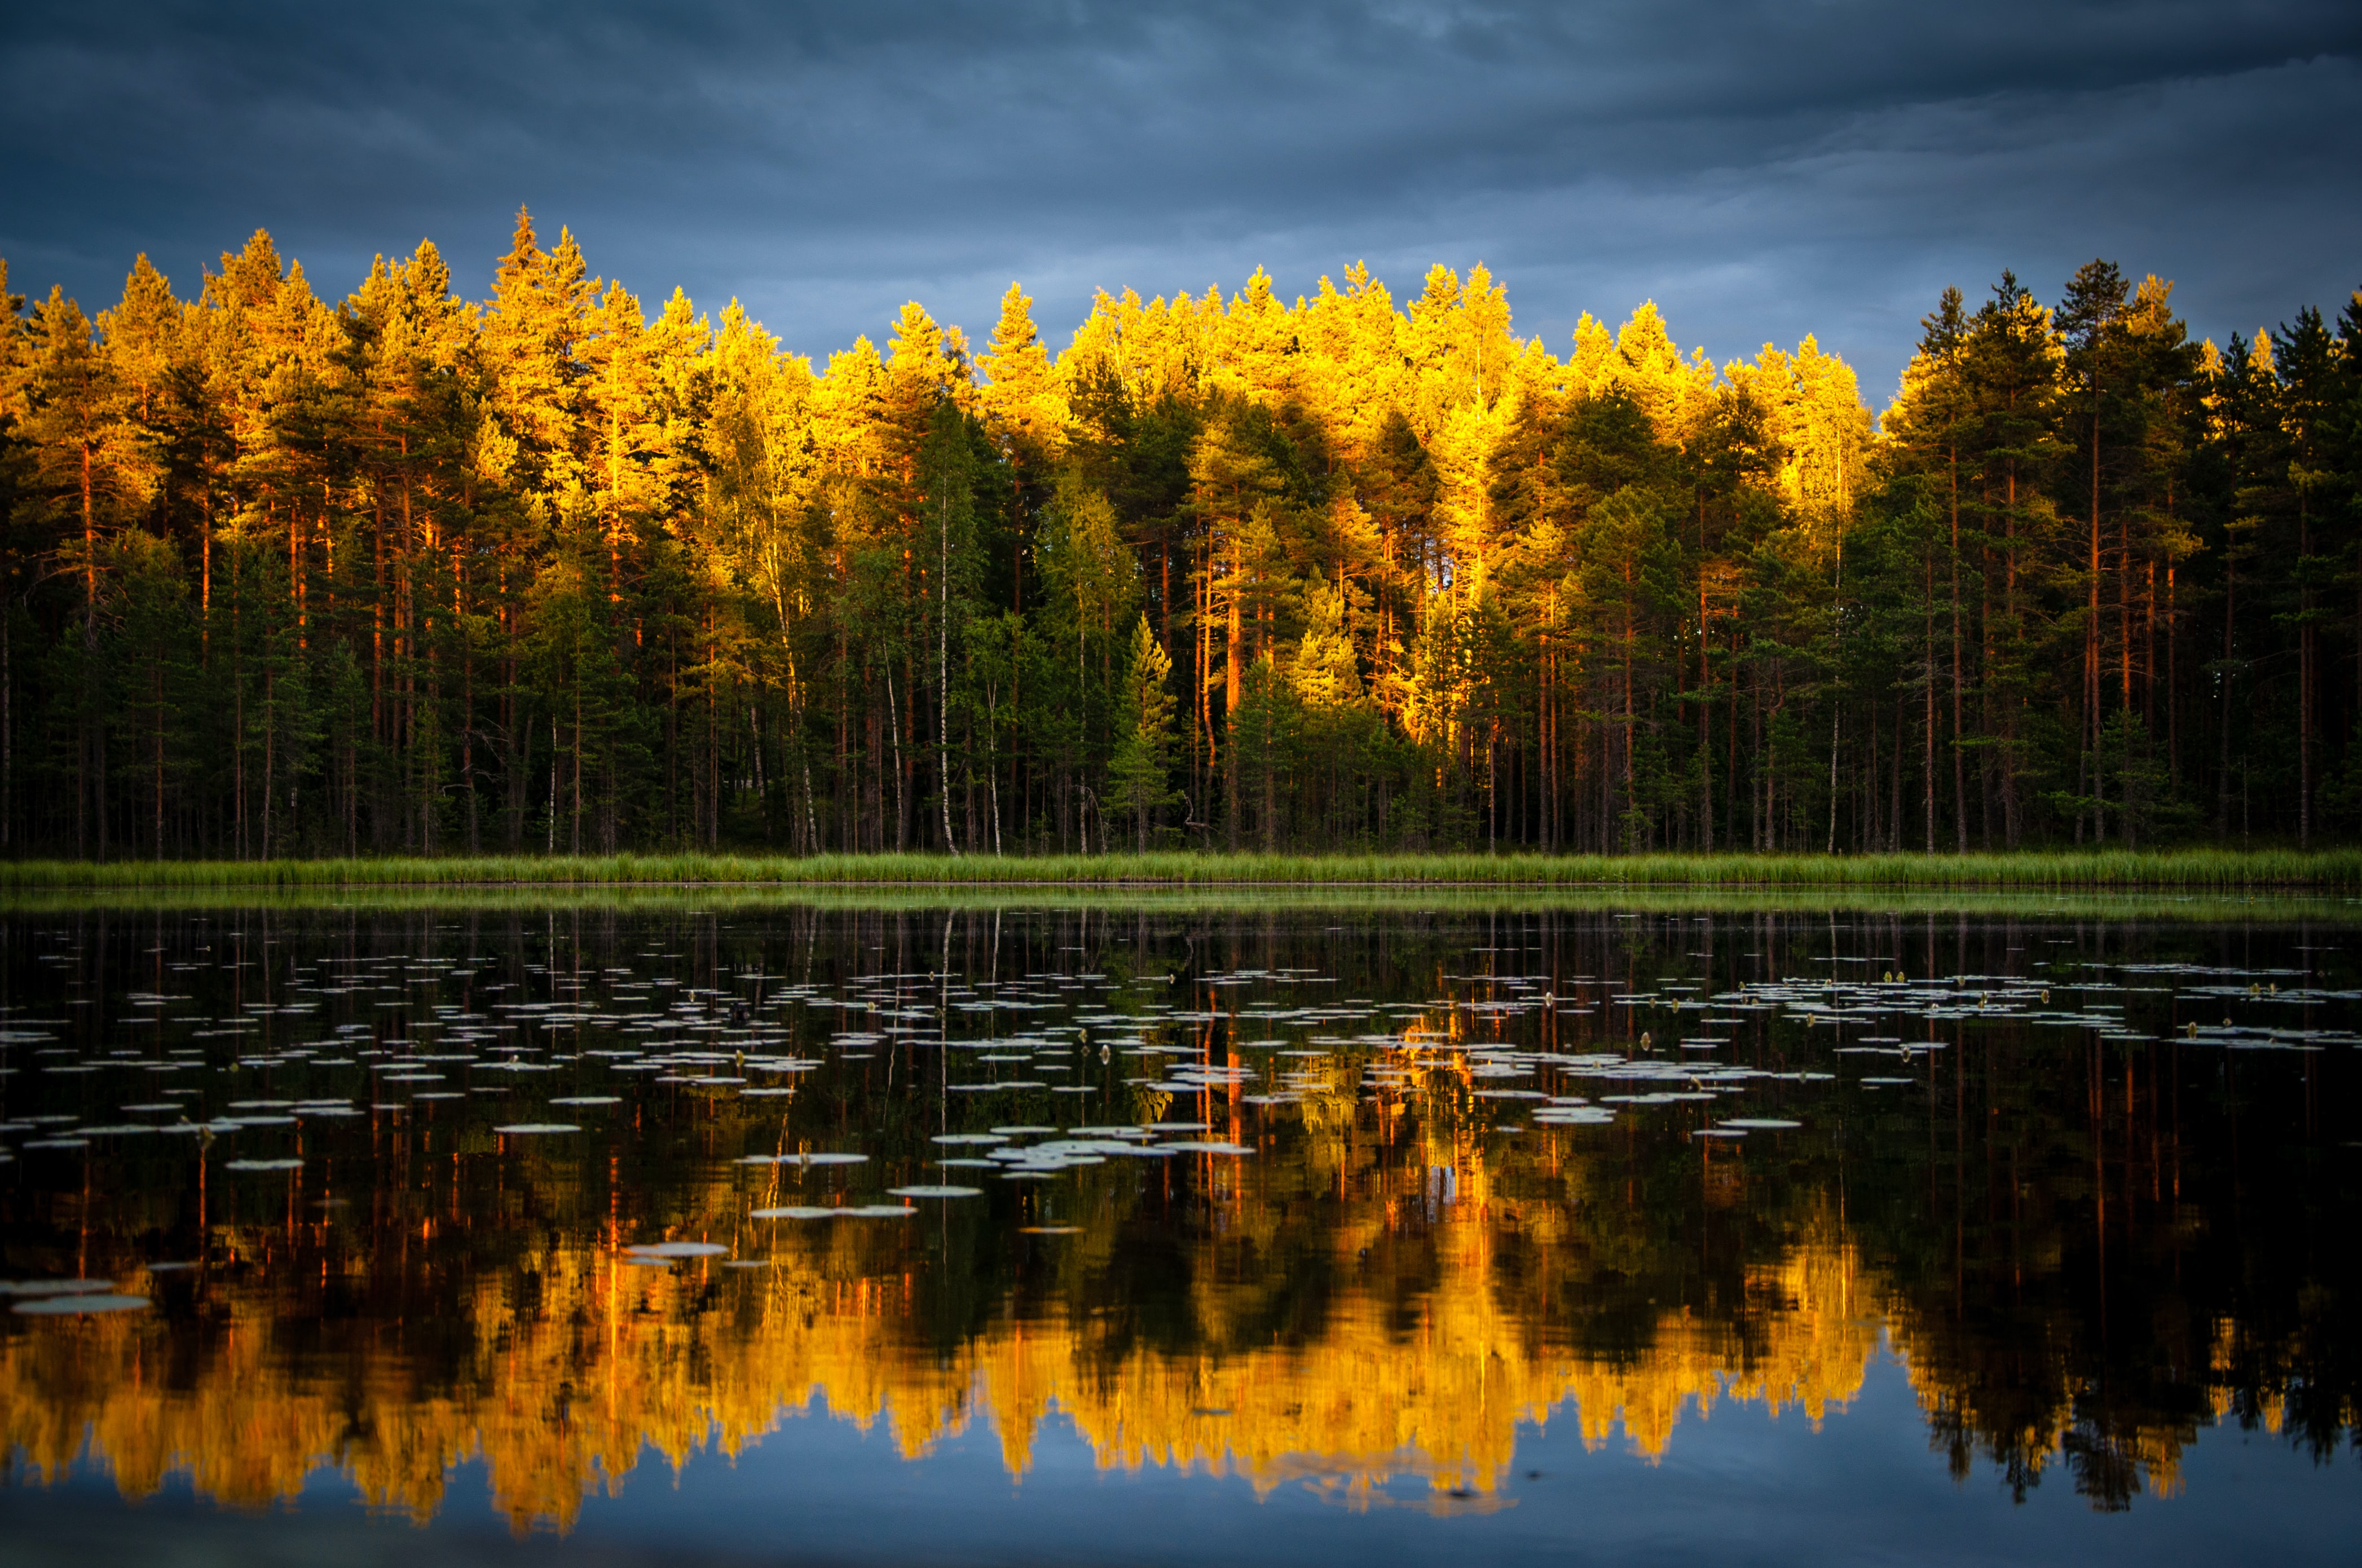 landscape photography yellow and green leafed trees